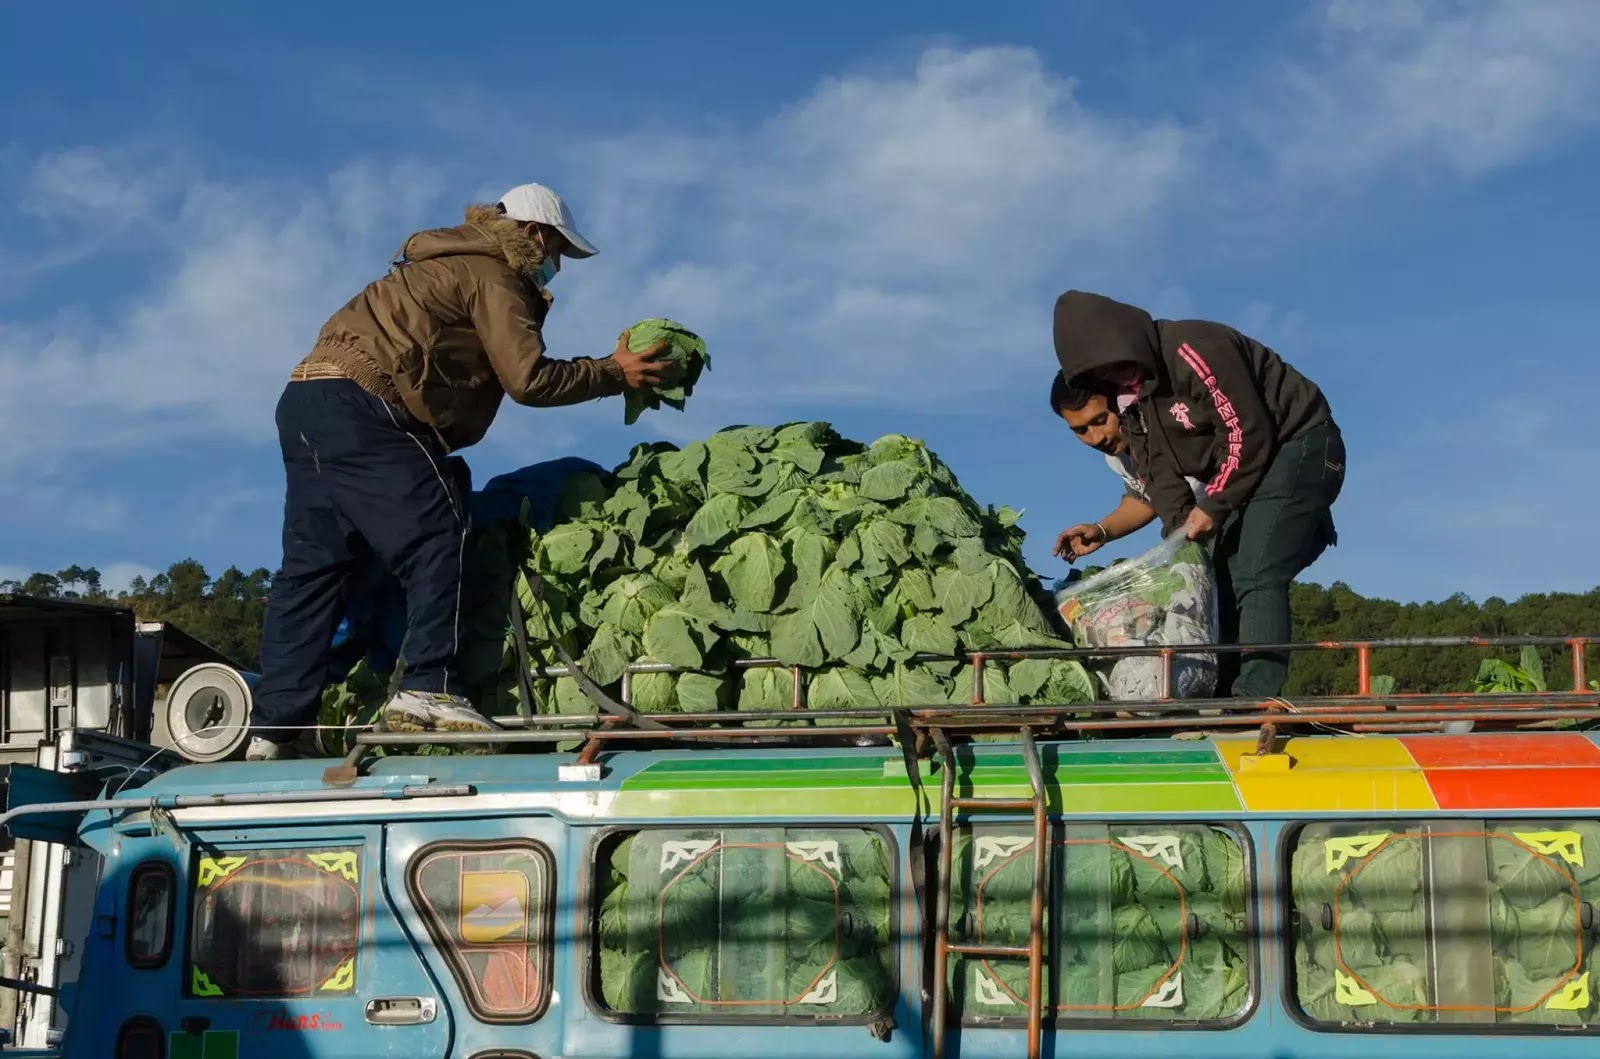 Vegetable Haulers Trading Post La Trinidad Benguet Cordillera Administrative Region Philippines